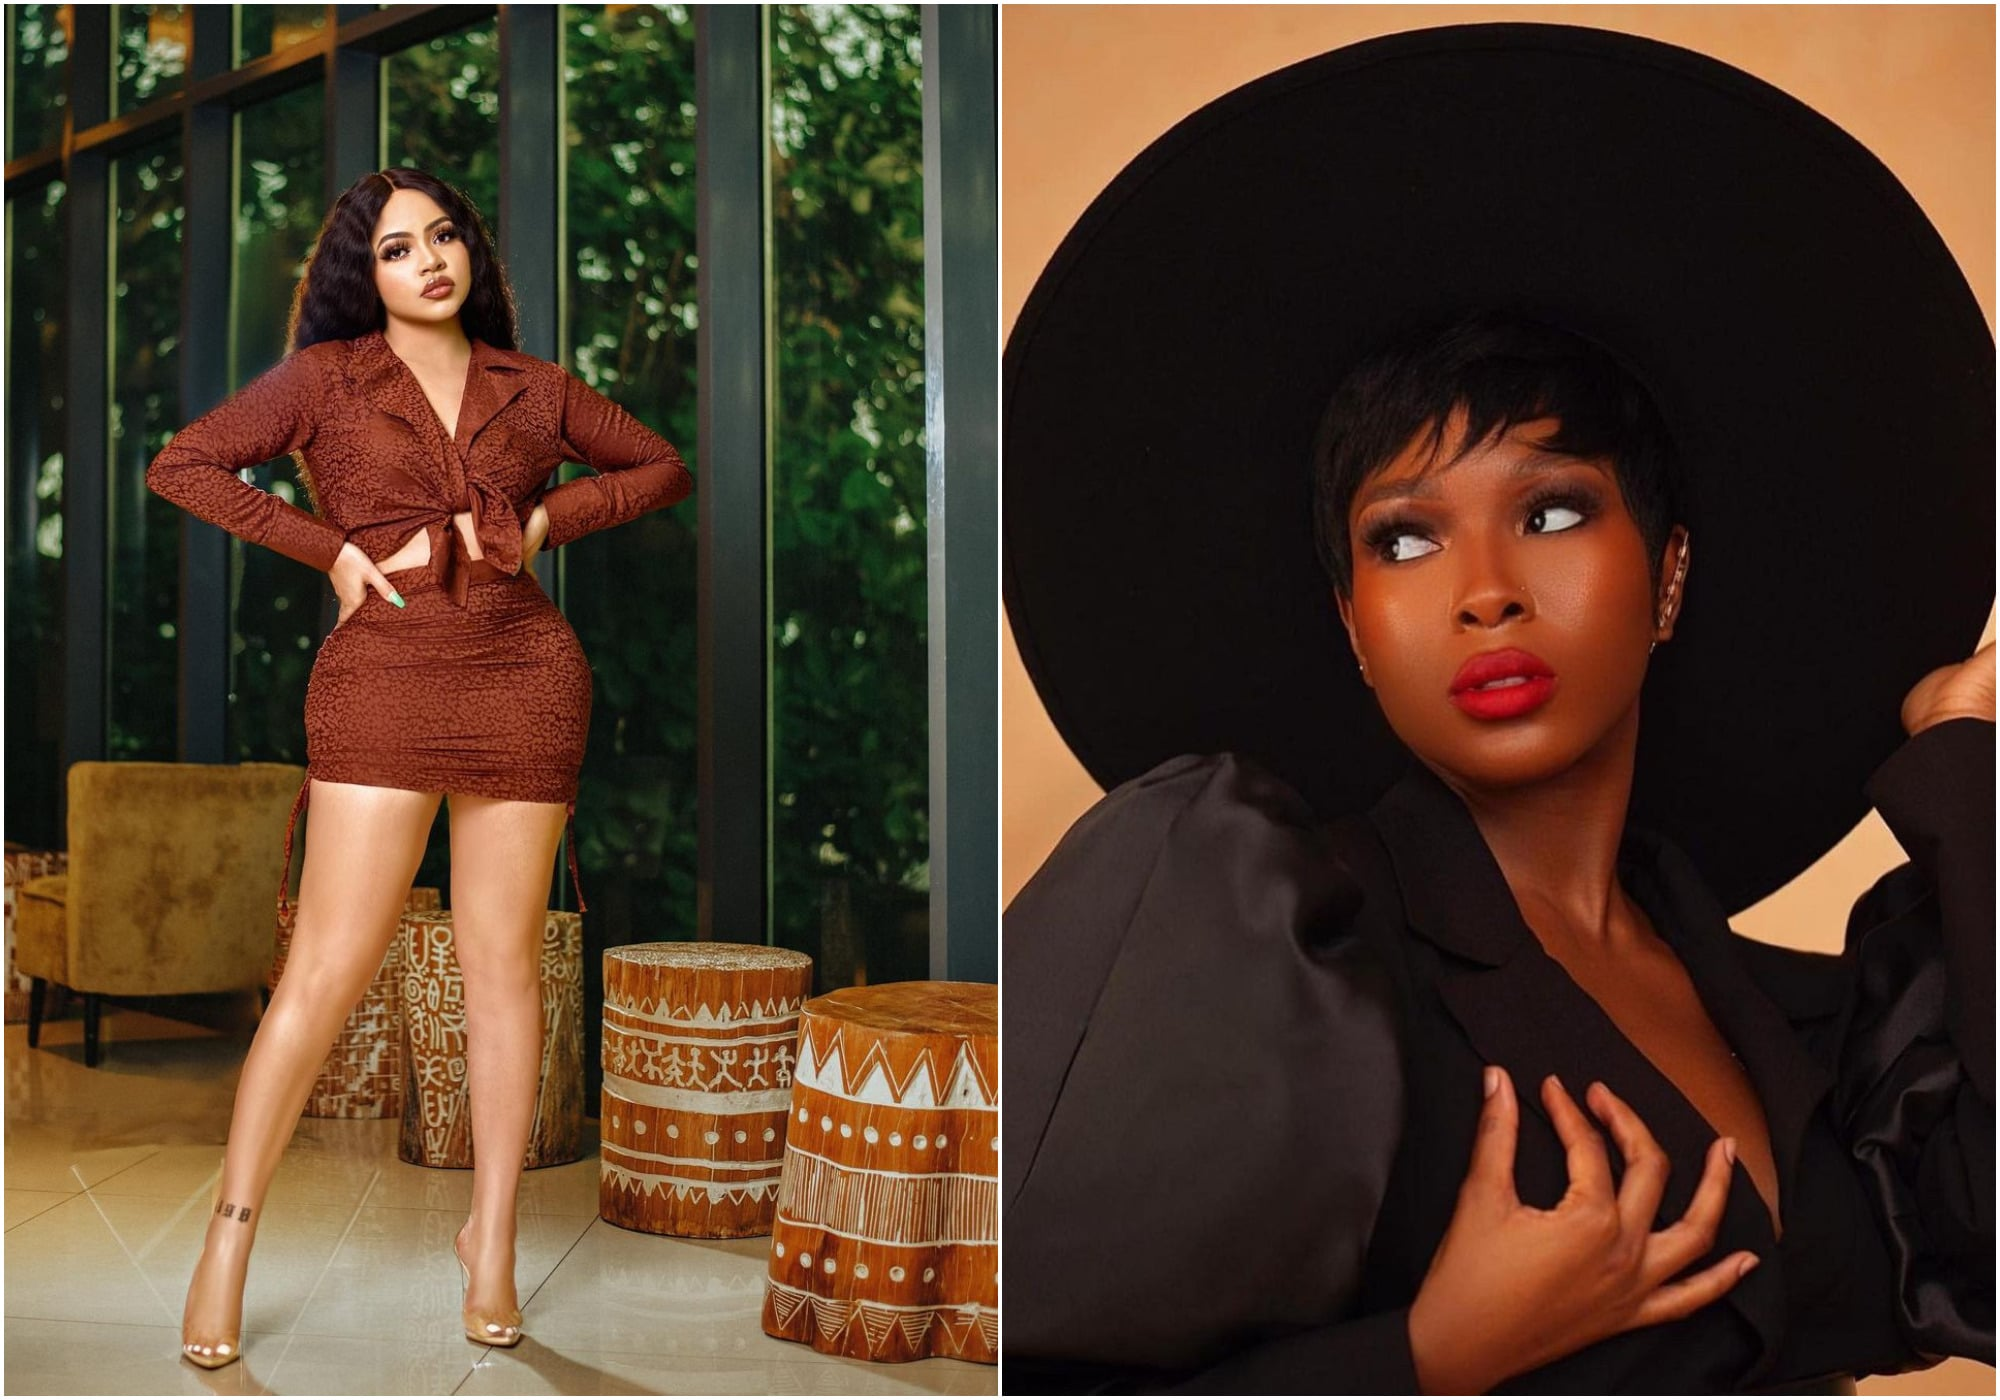 'Thank you for your beautiful friendship' - Nengi pens lovely message to Vee